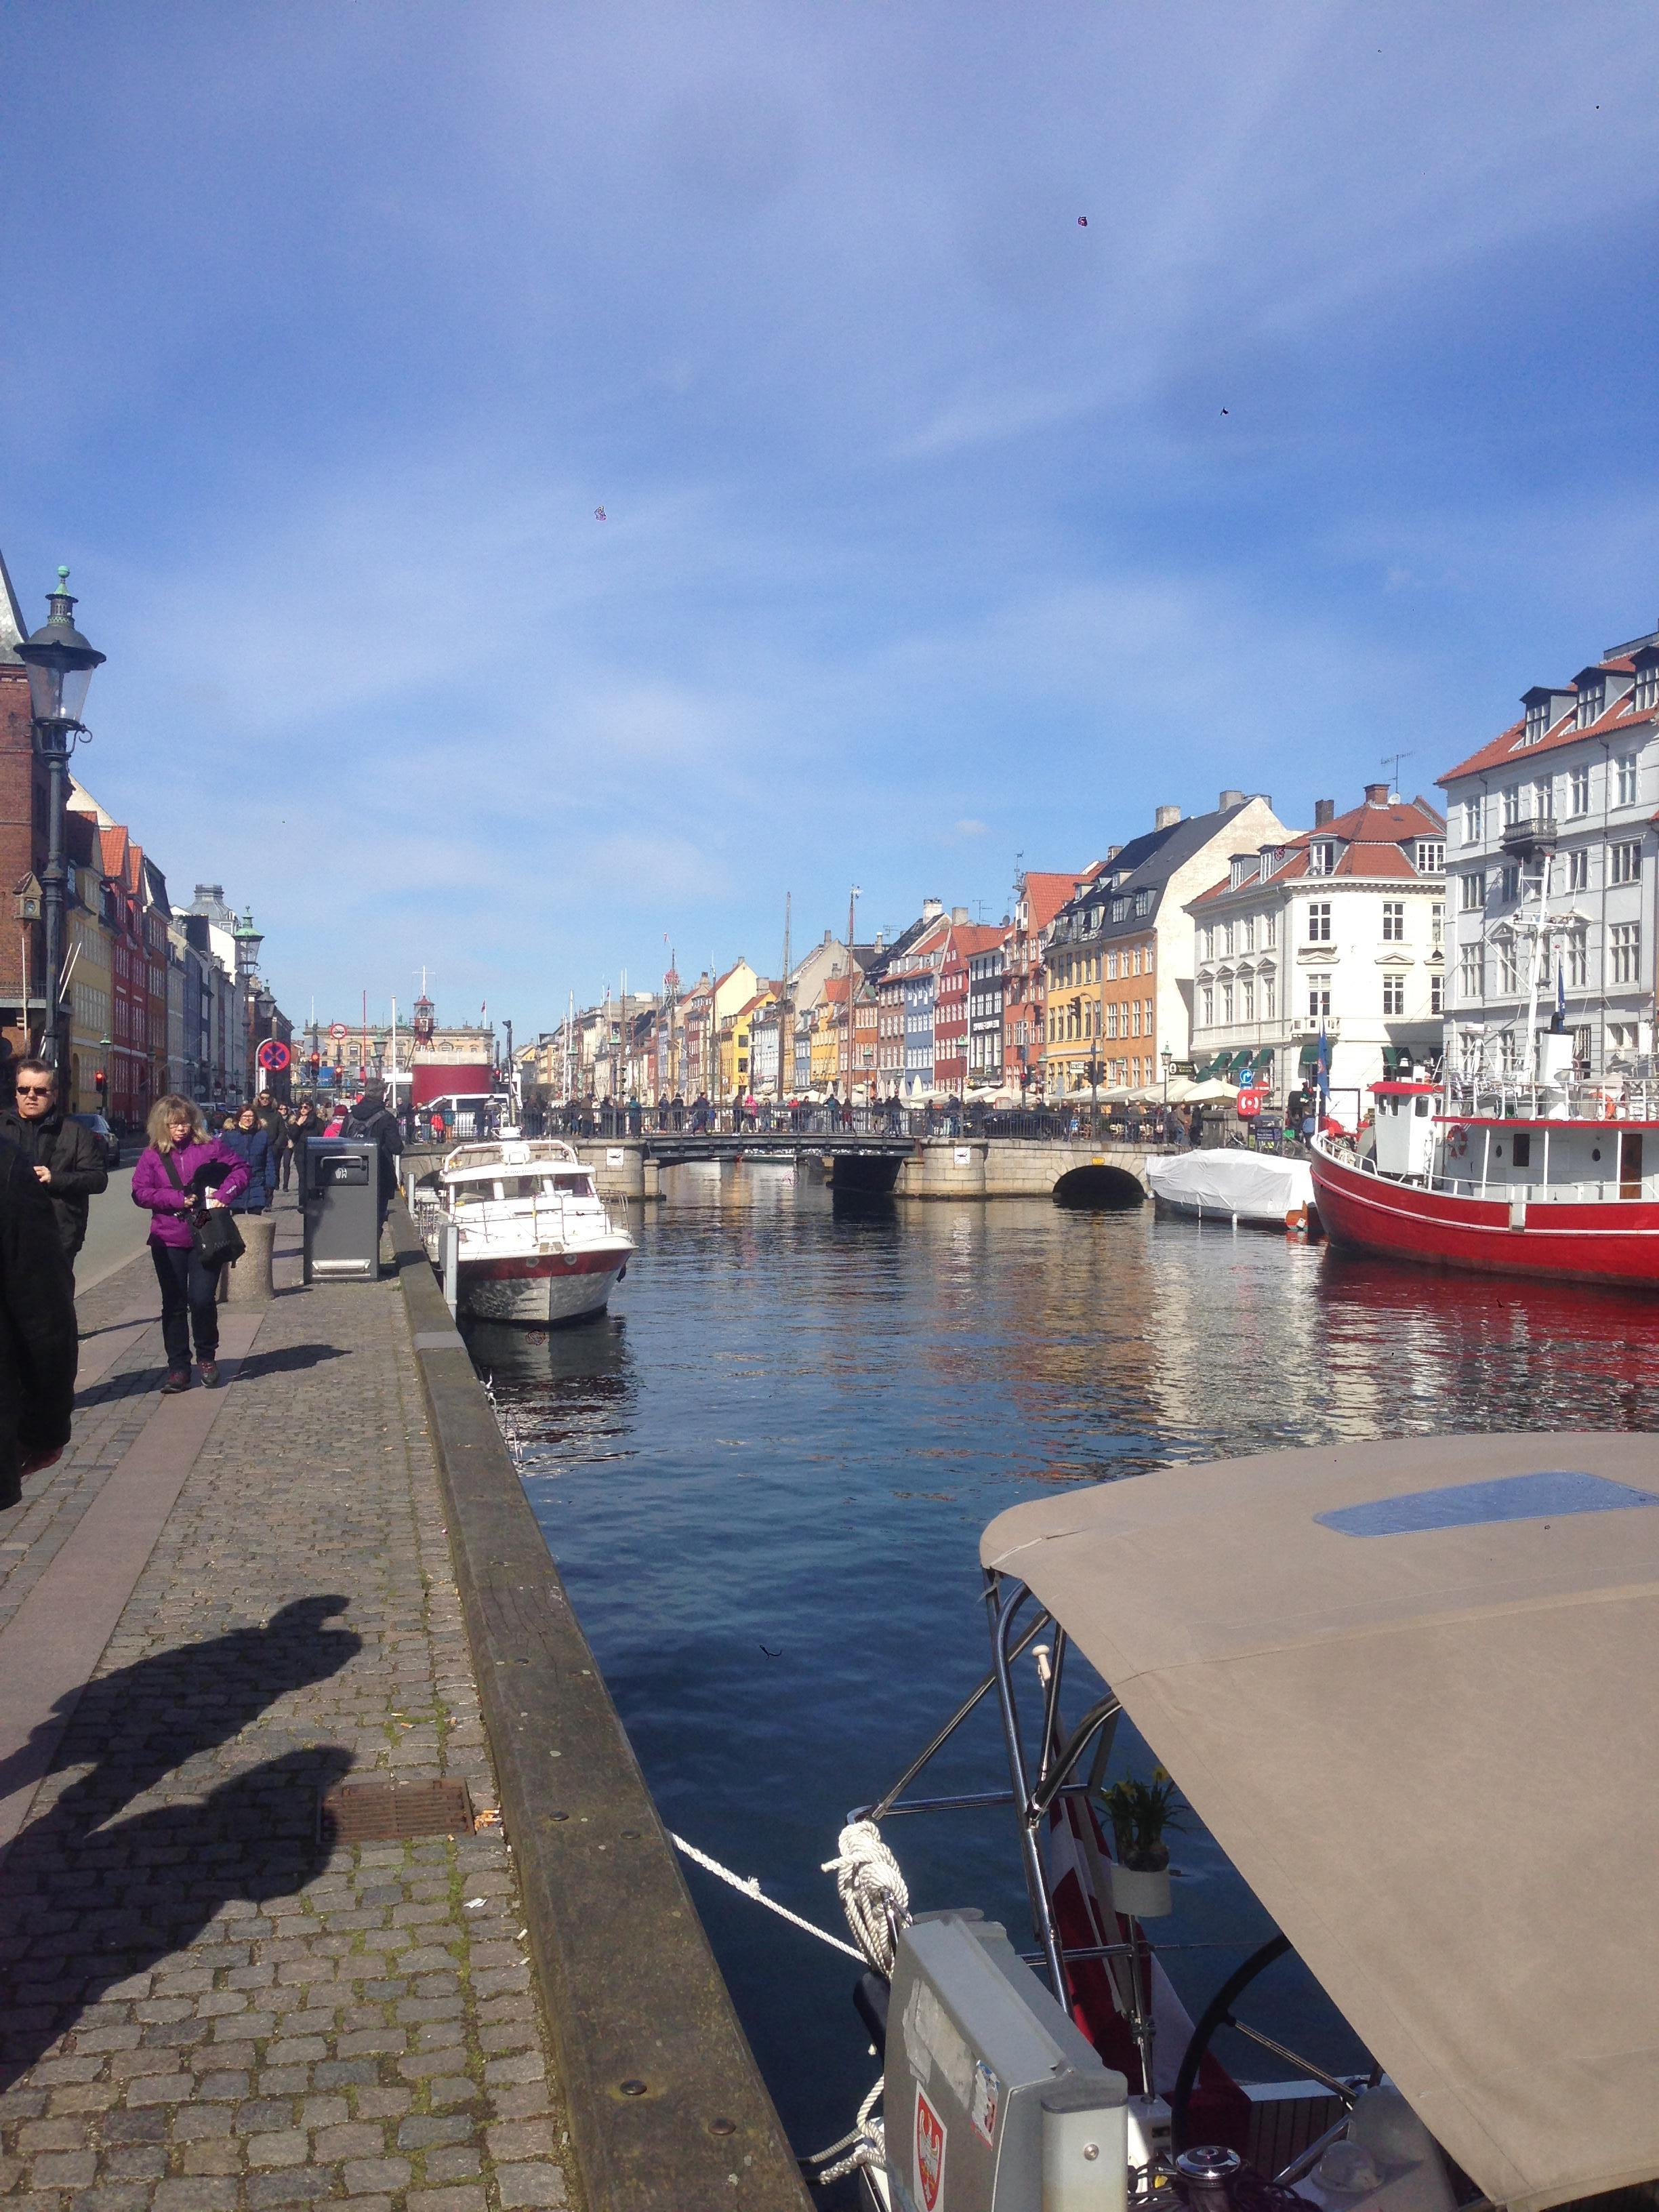 Closw to Nyhavn